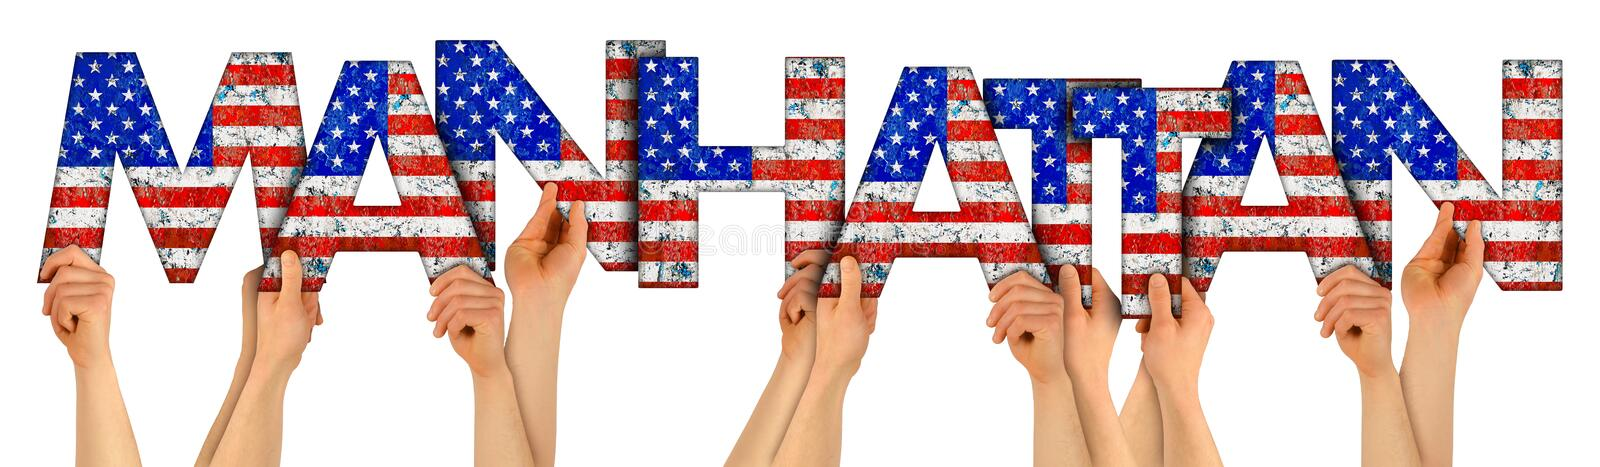 People arms hands holding up wooden letter lettering forming words Manhattan new york city in USA american national flag colors stock photo